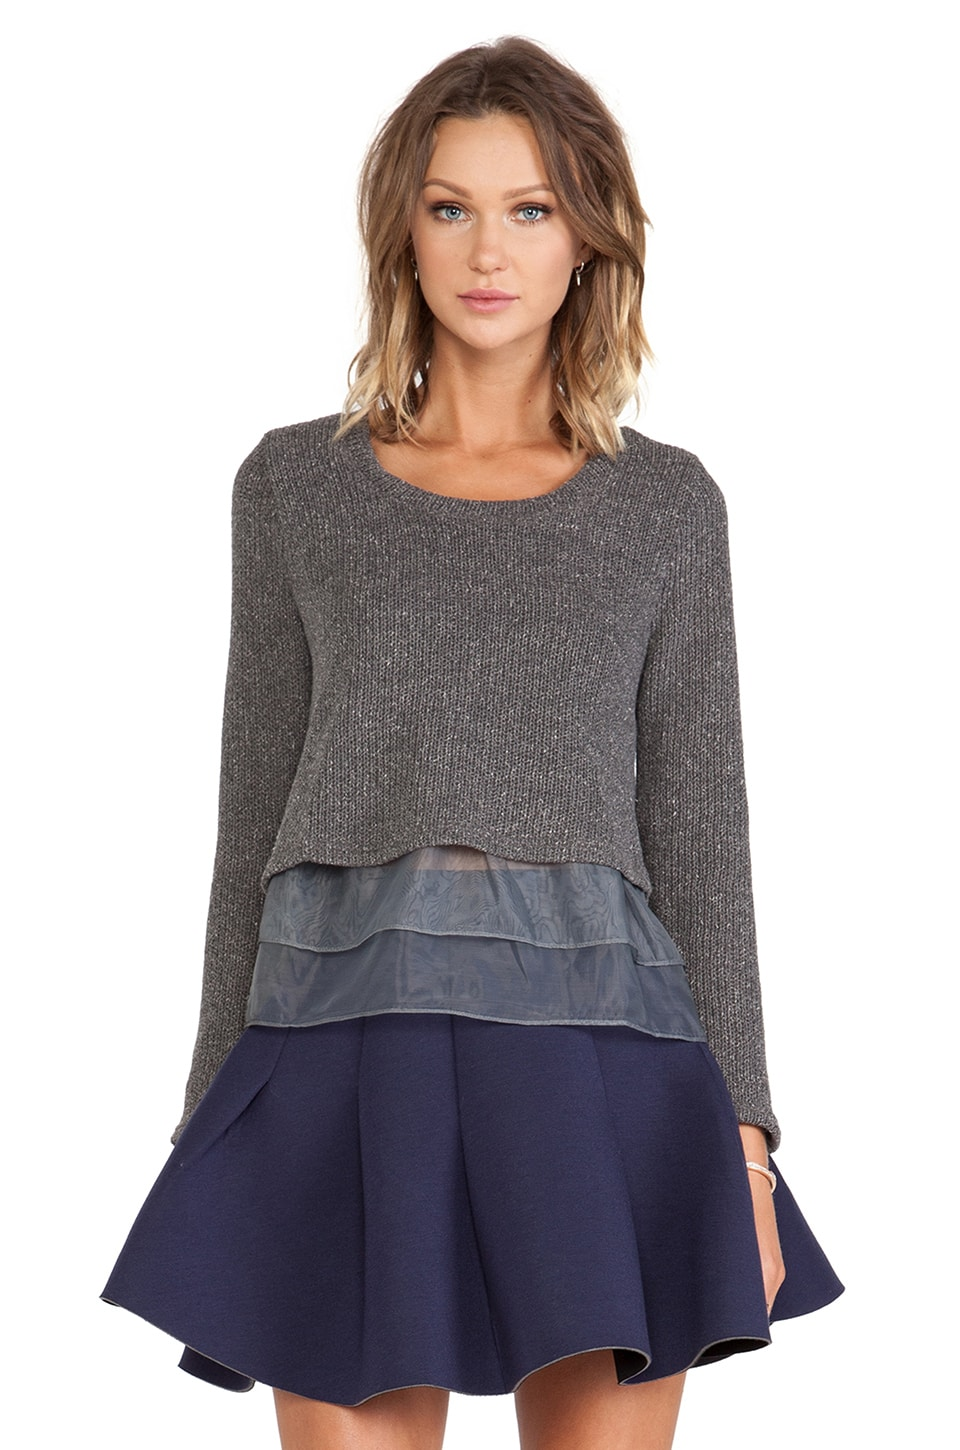 J.O.A. Organza Sweater in Charcoal